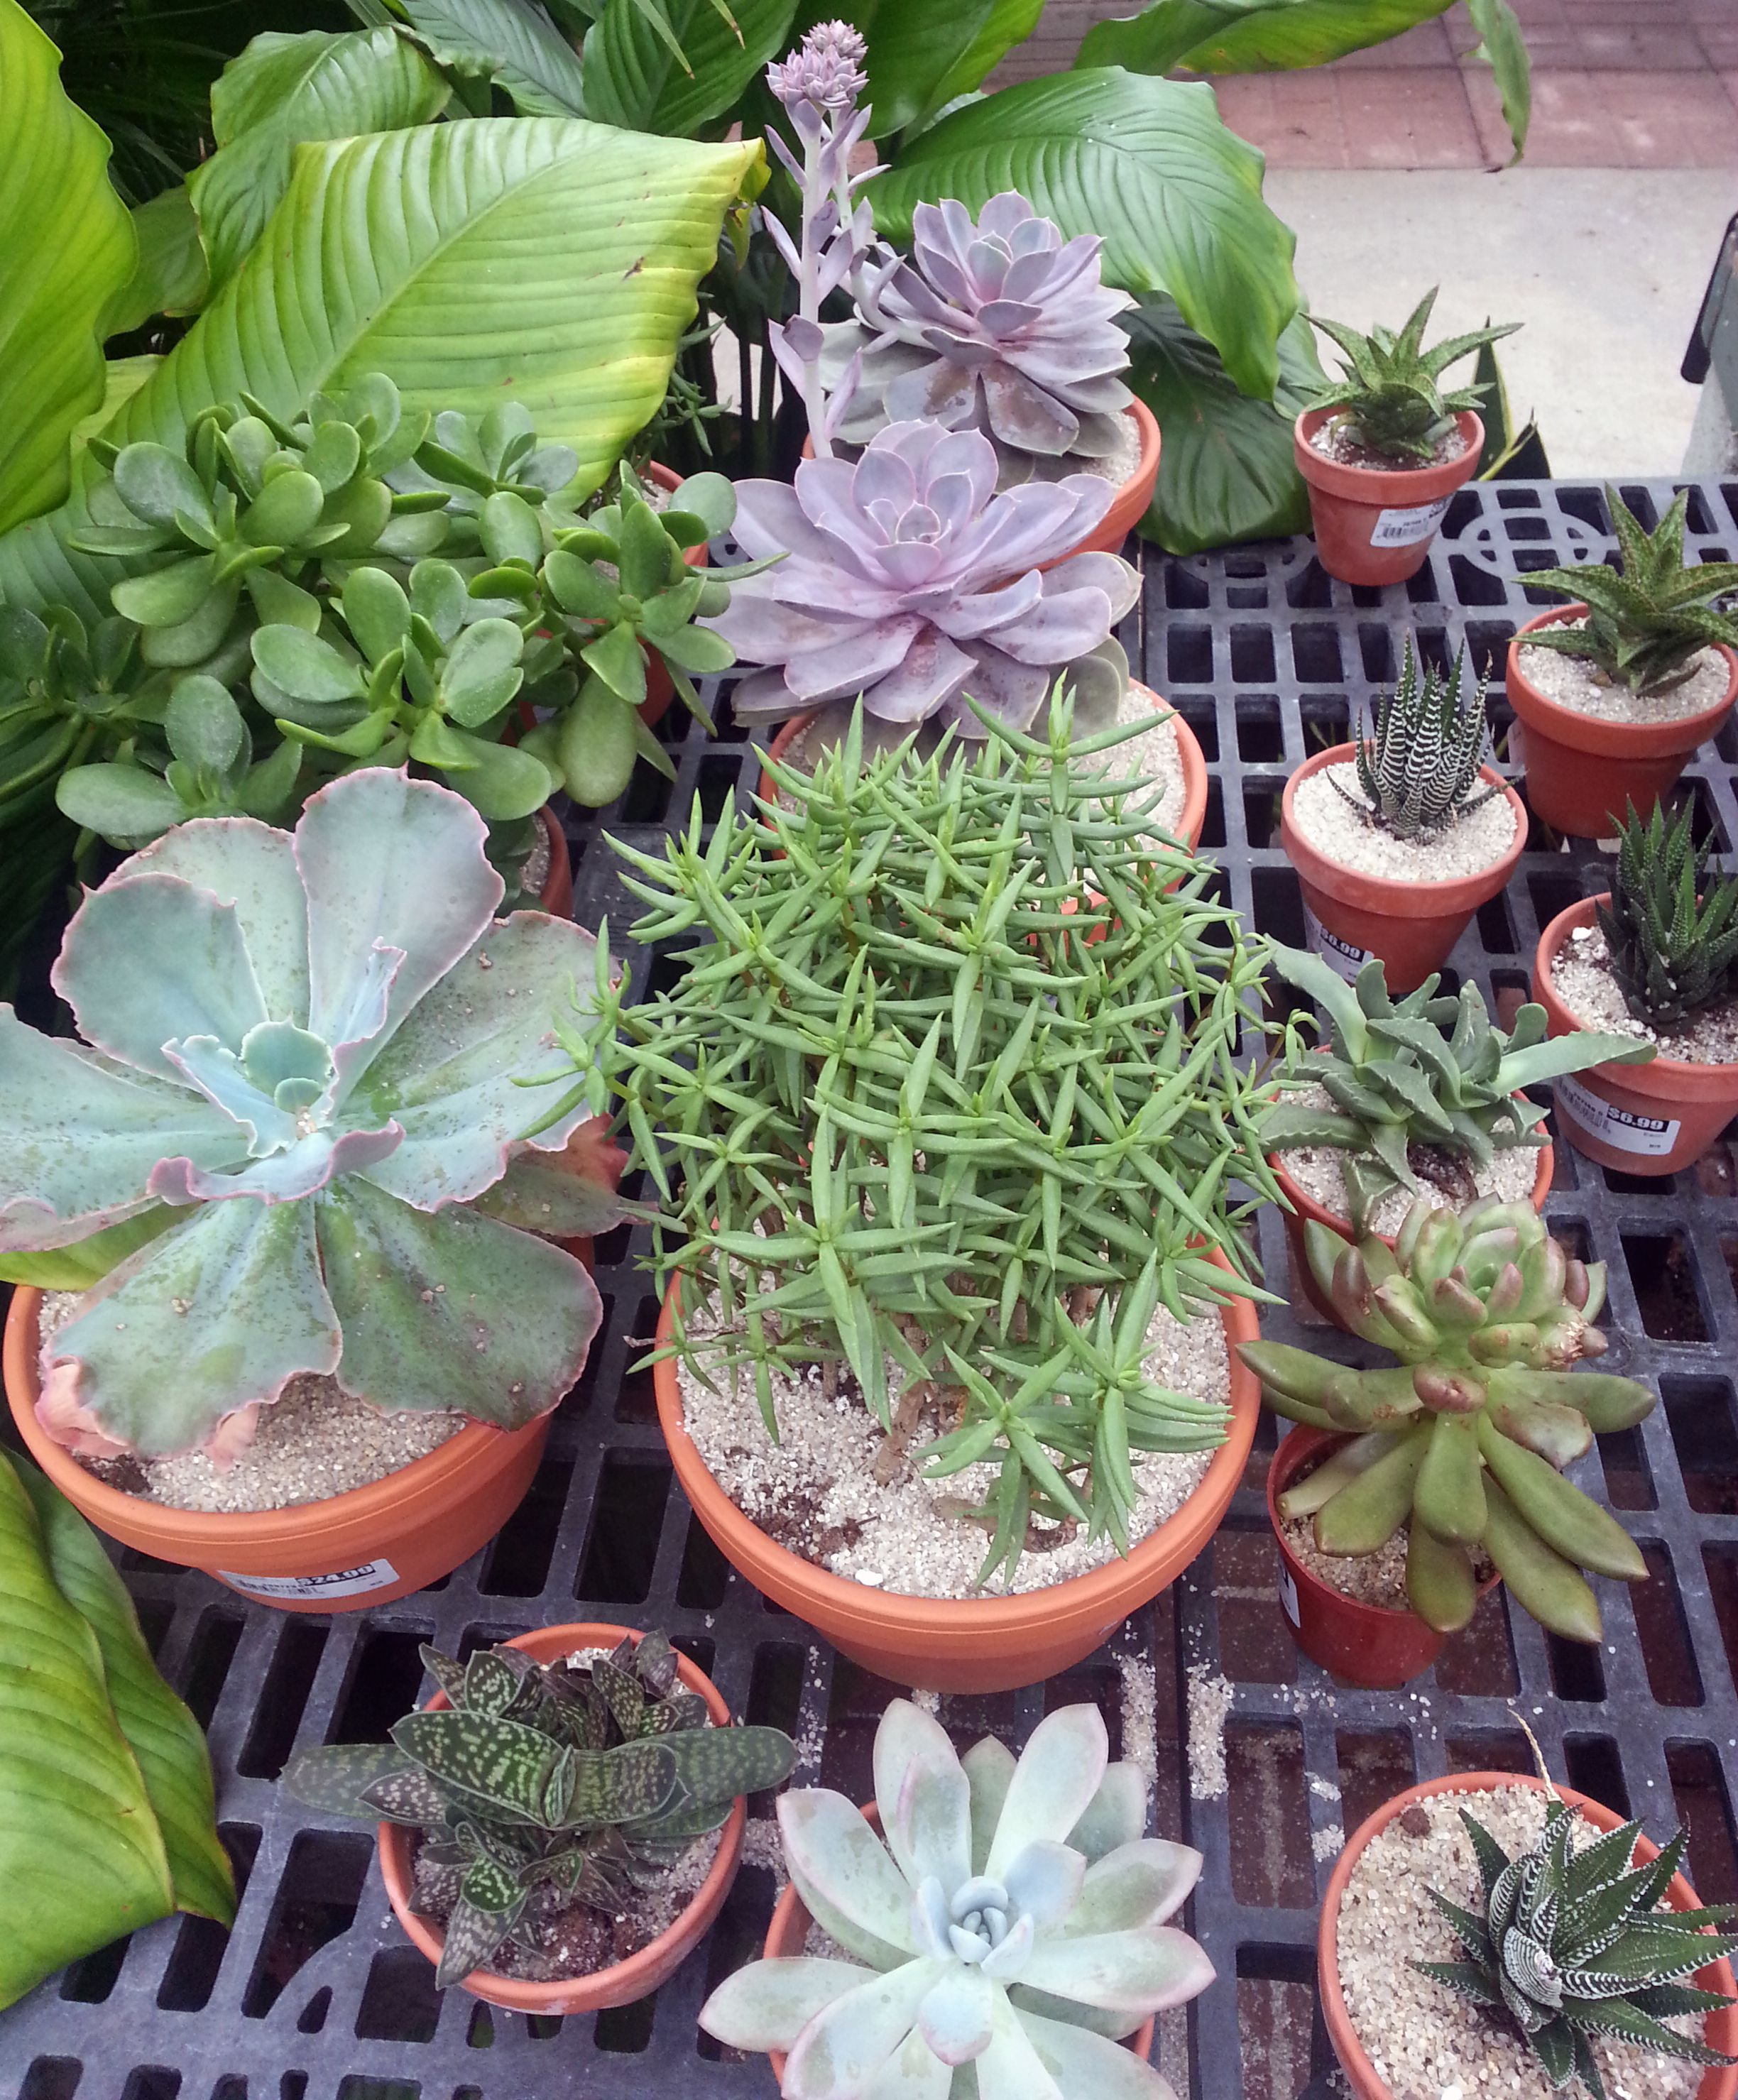 ... From Stauffers Of Kissel Hill Garden Center. Learn How To Care For  Succulents U0026 Cactus Here: (http://www.skh .com/gardeningatoz/cactus Succulent Care/) Good Ideas